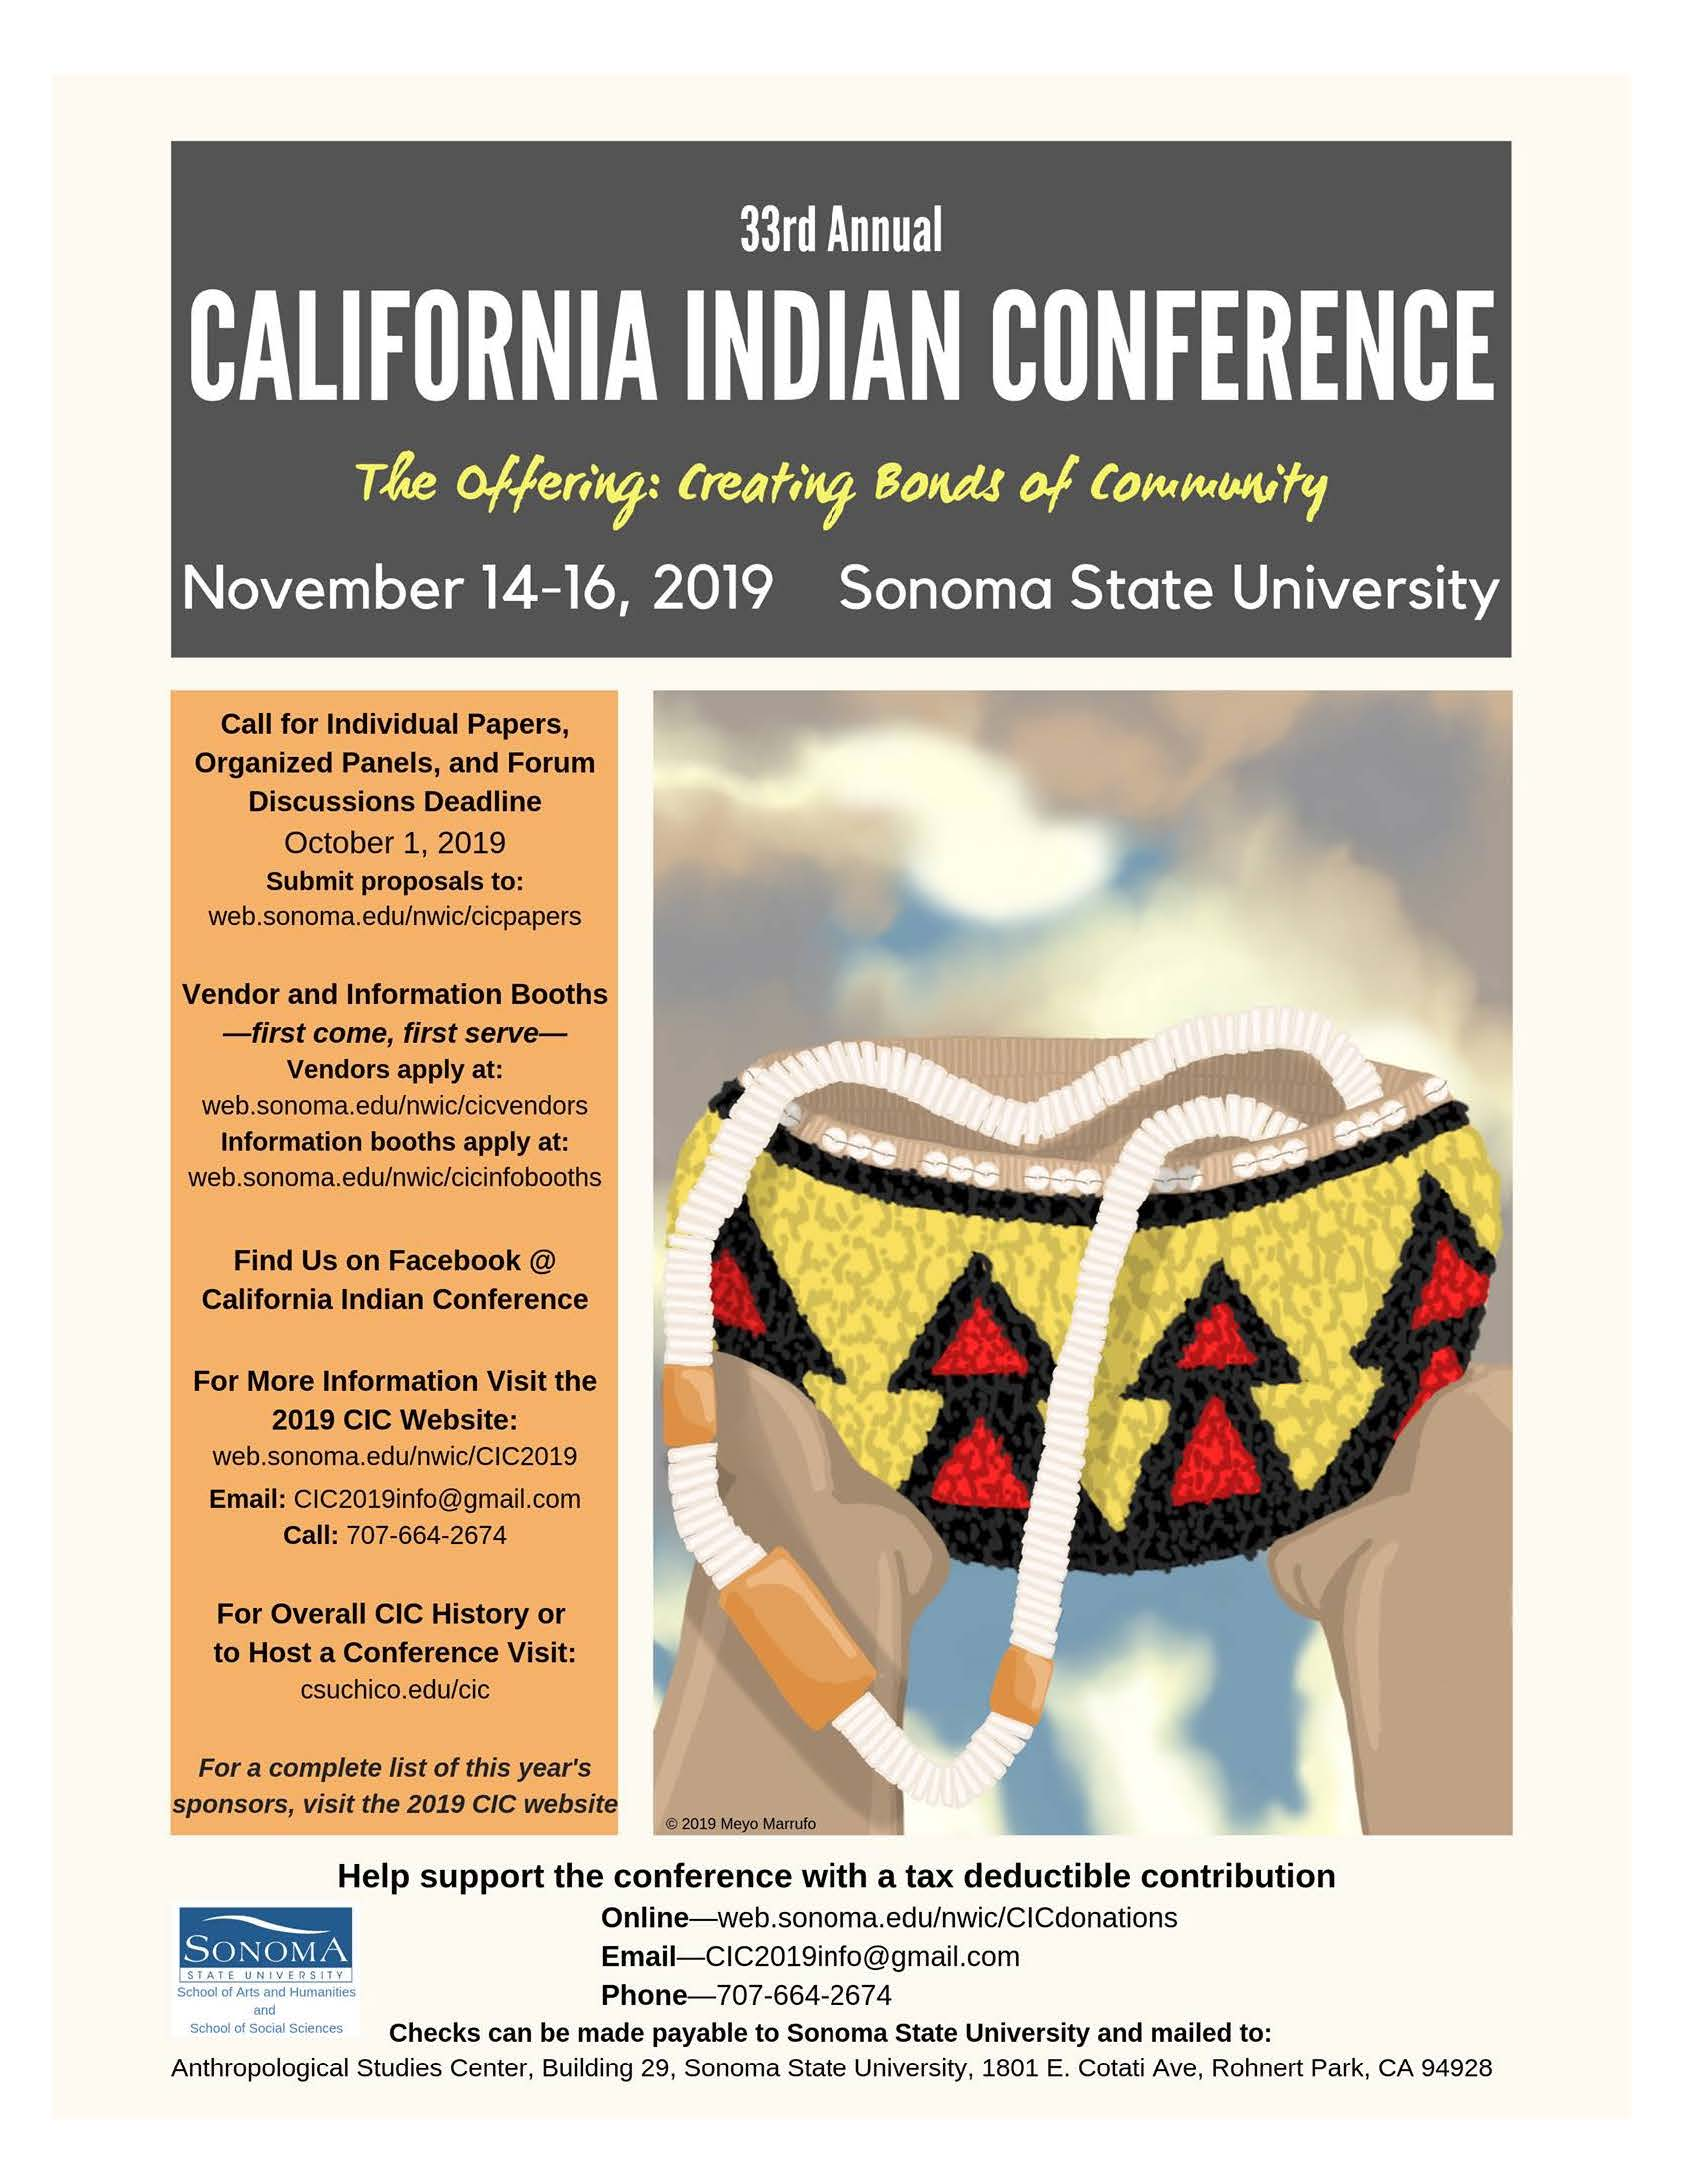 33rd Annual California Indian Conference at Sonoma State University